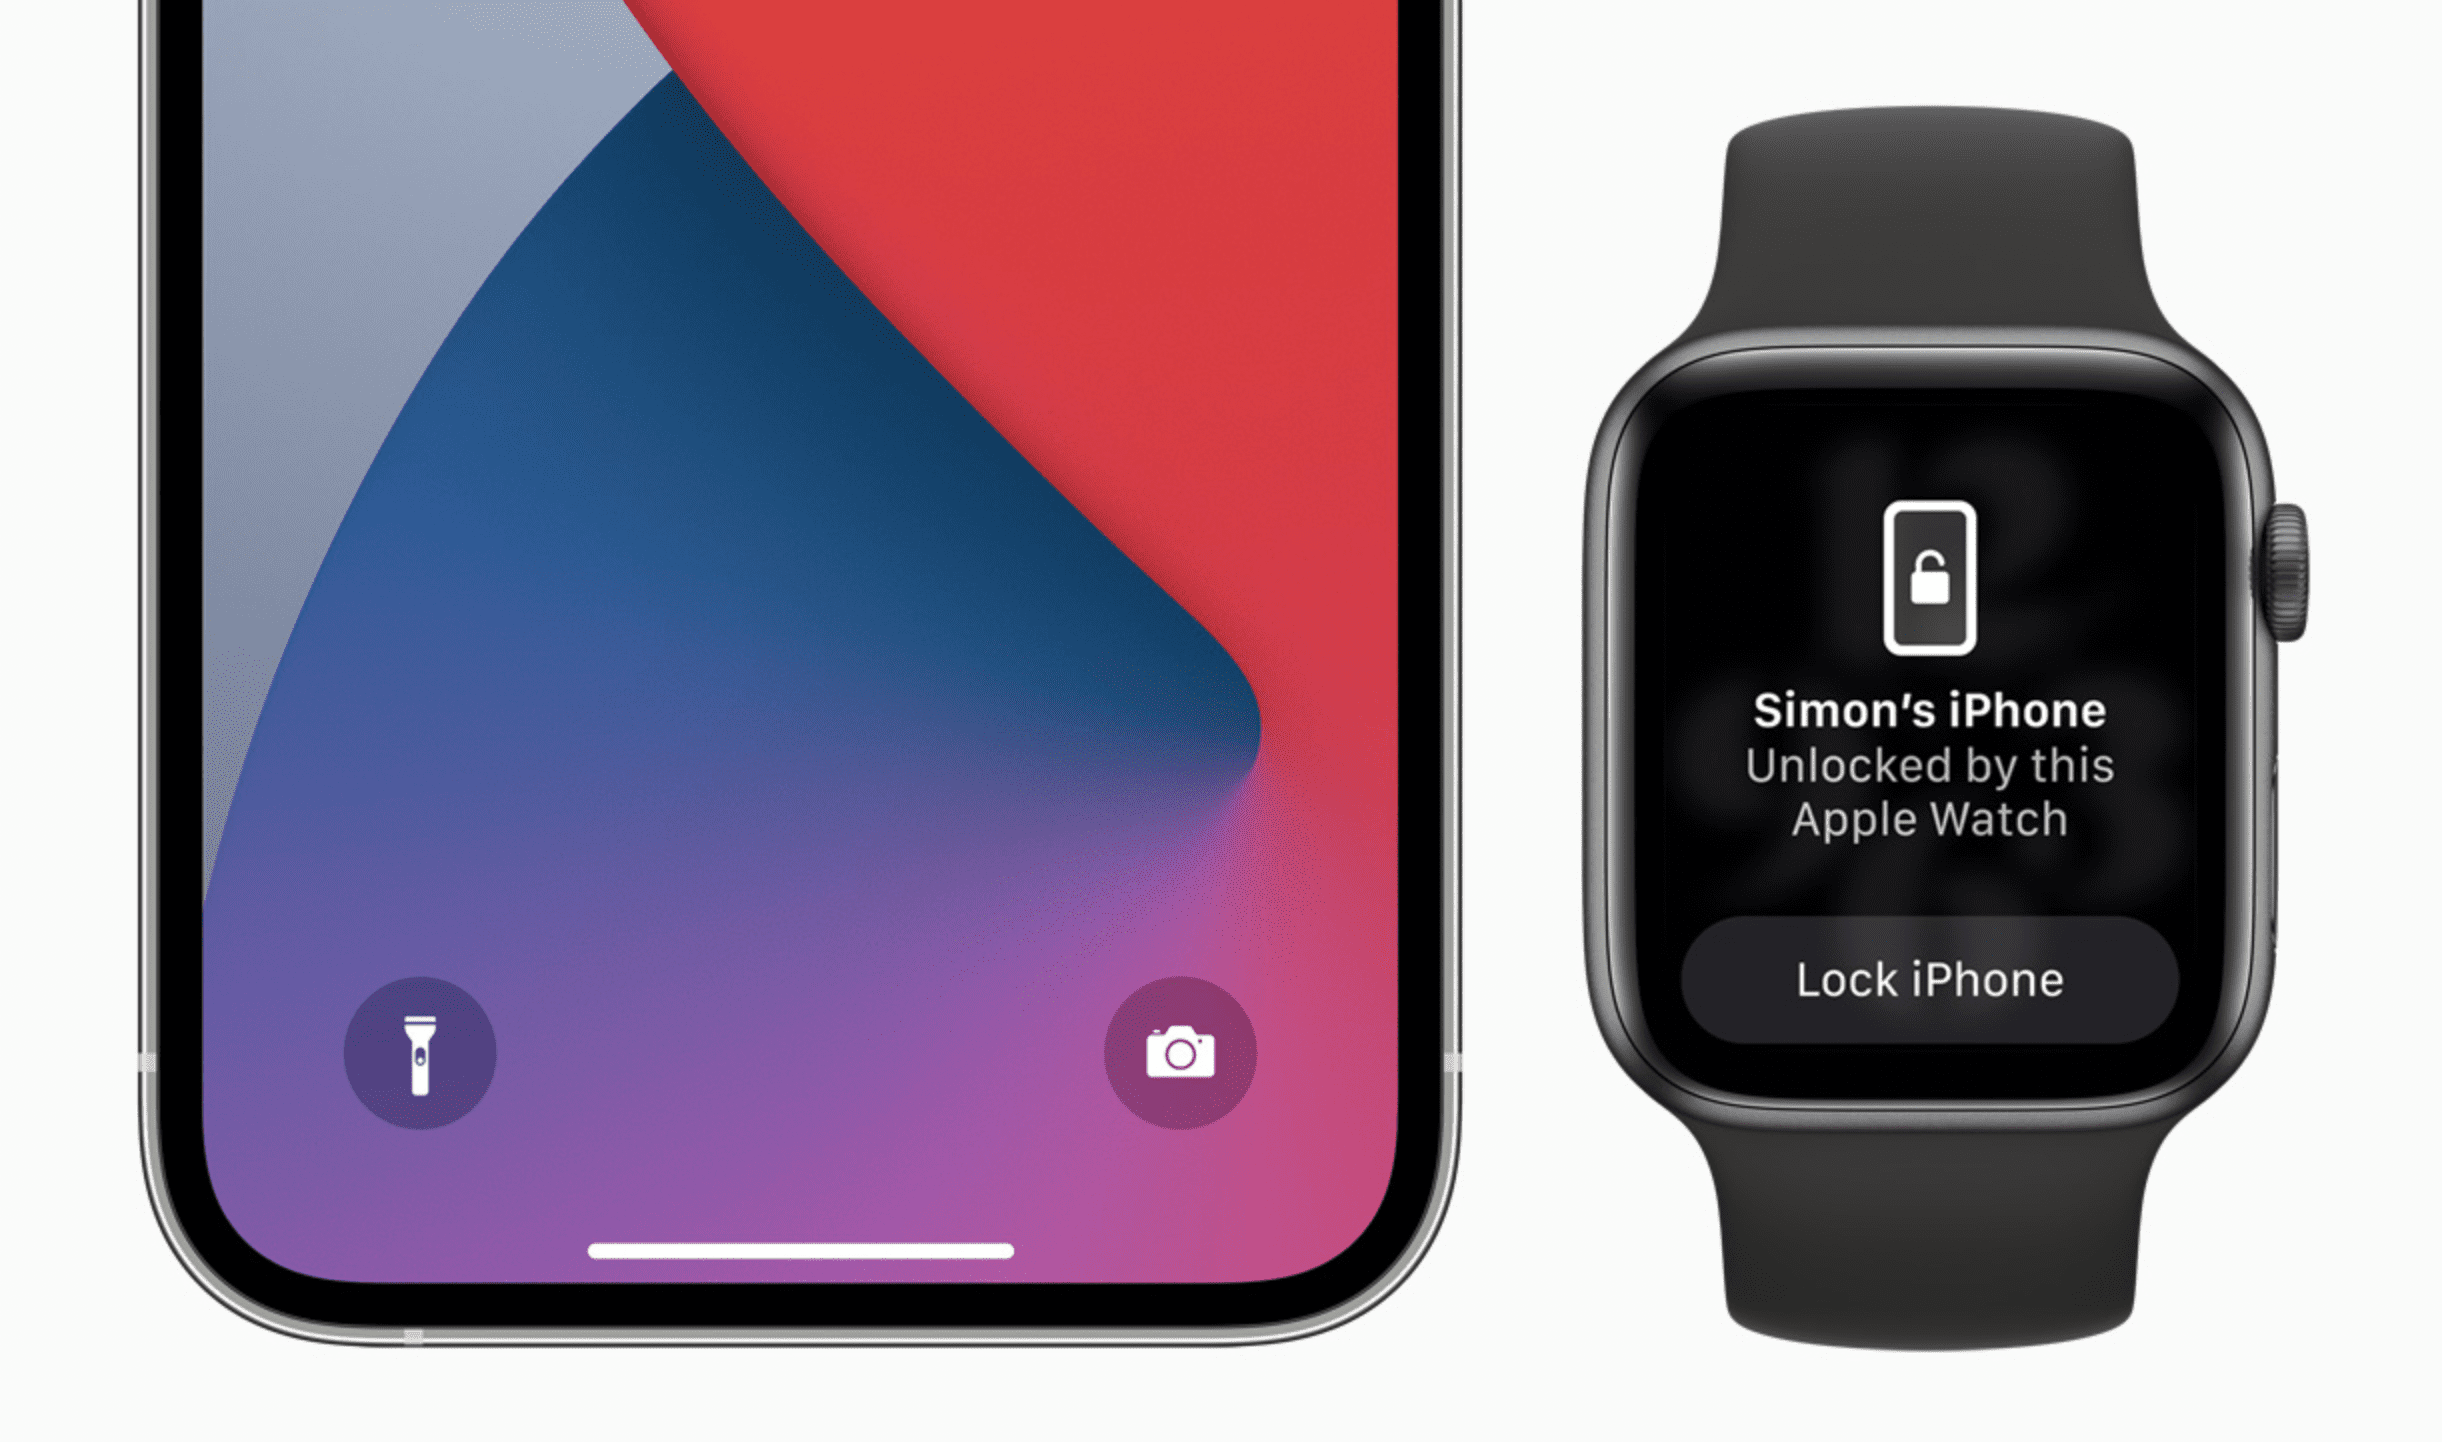 Apple Watch showing prompt to unlock iPhone